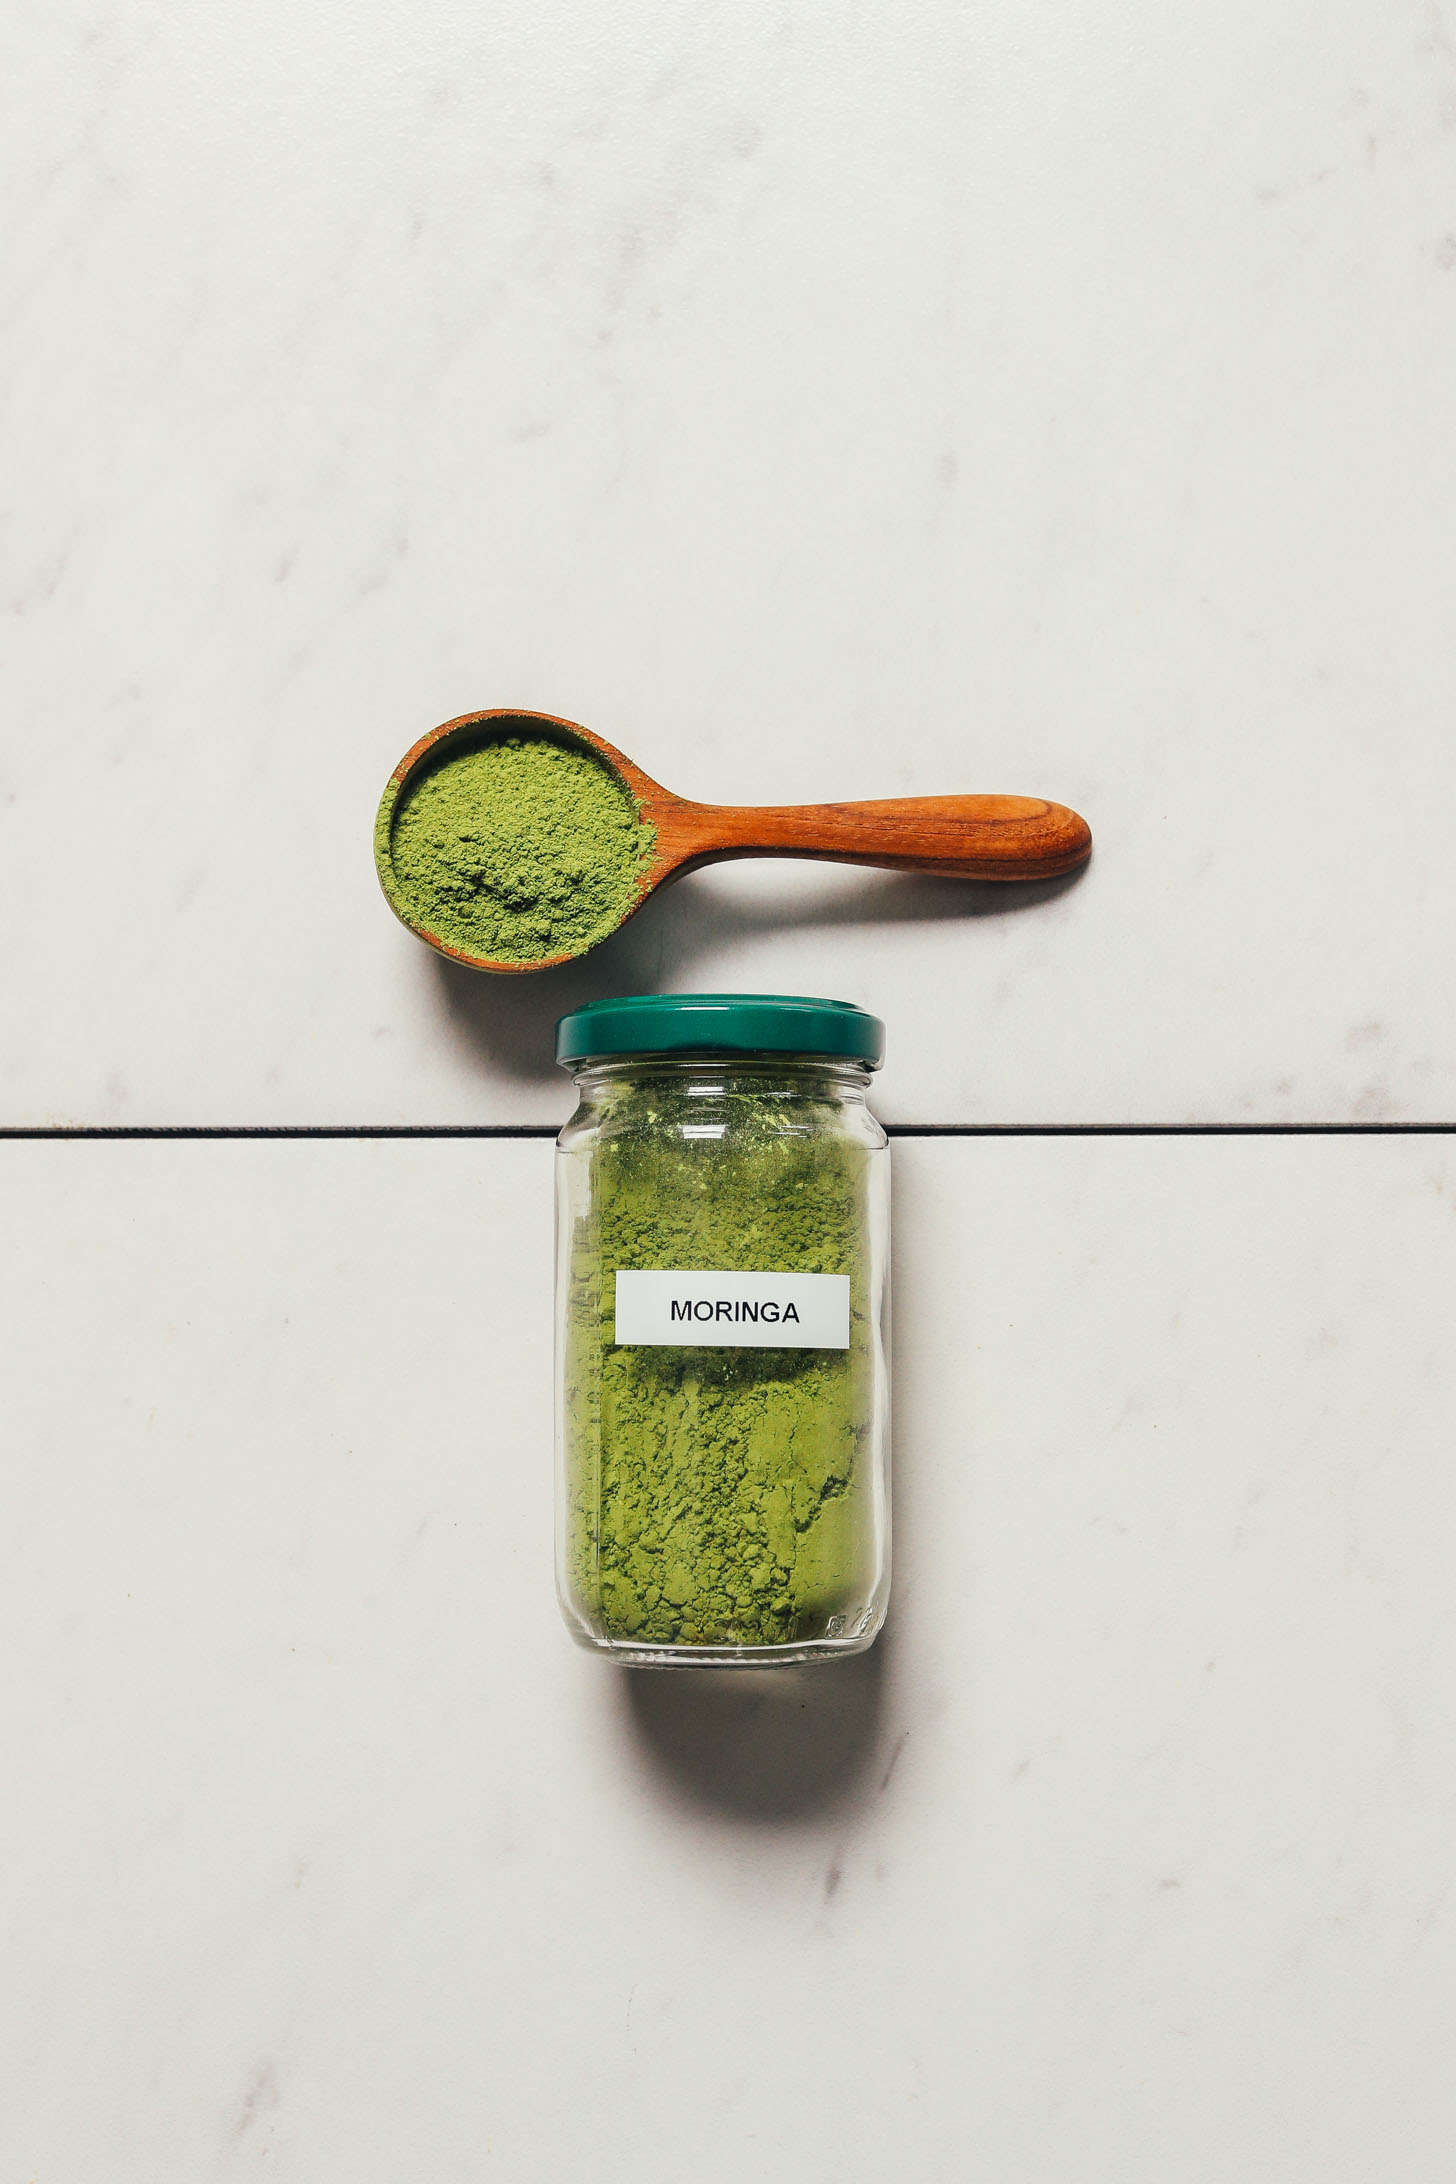 Jar and spoonful of Miracle Garden moringa powder for our top rated moringa powder